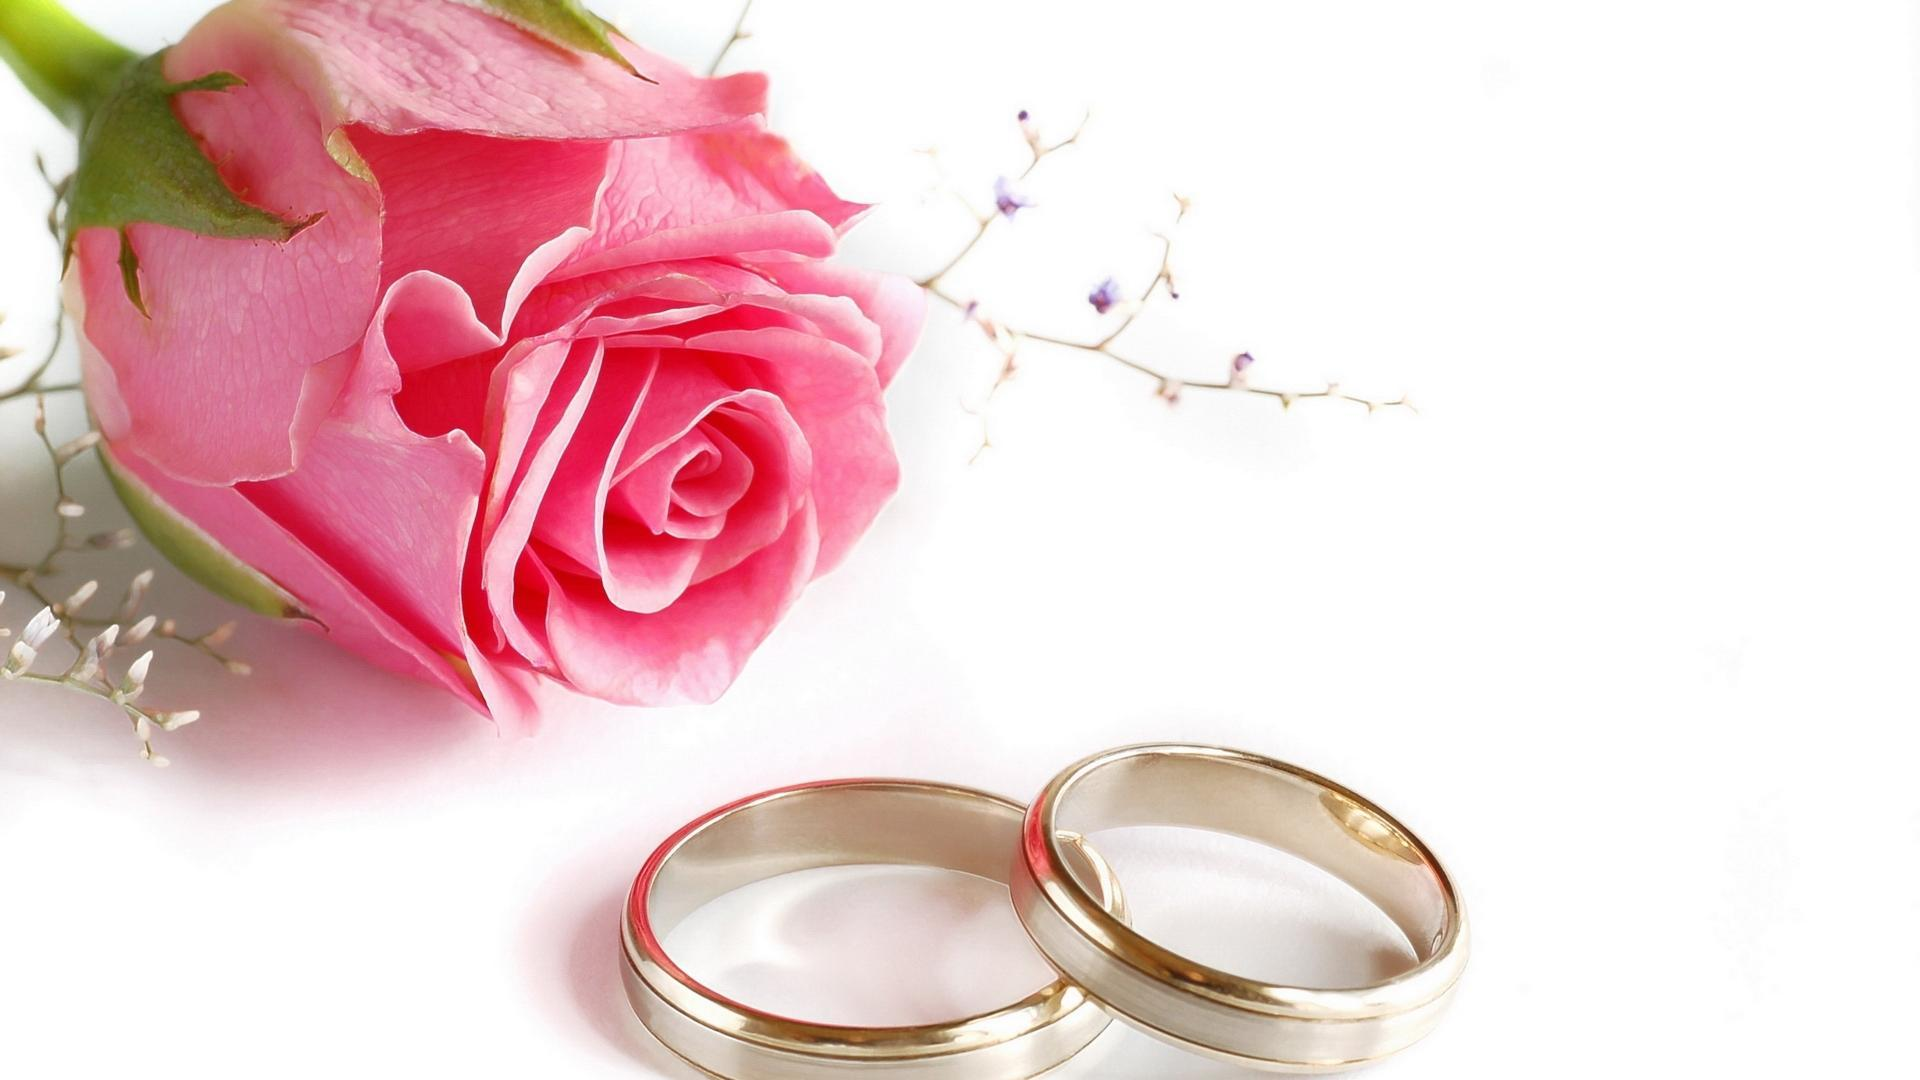 Wedding Rings Rose Flower Hd Wallpaper Backgrounds Smadata